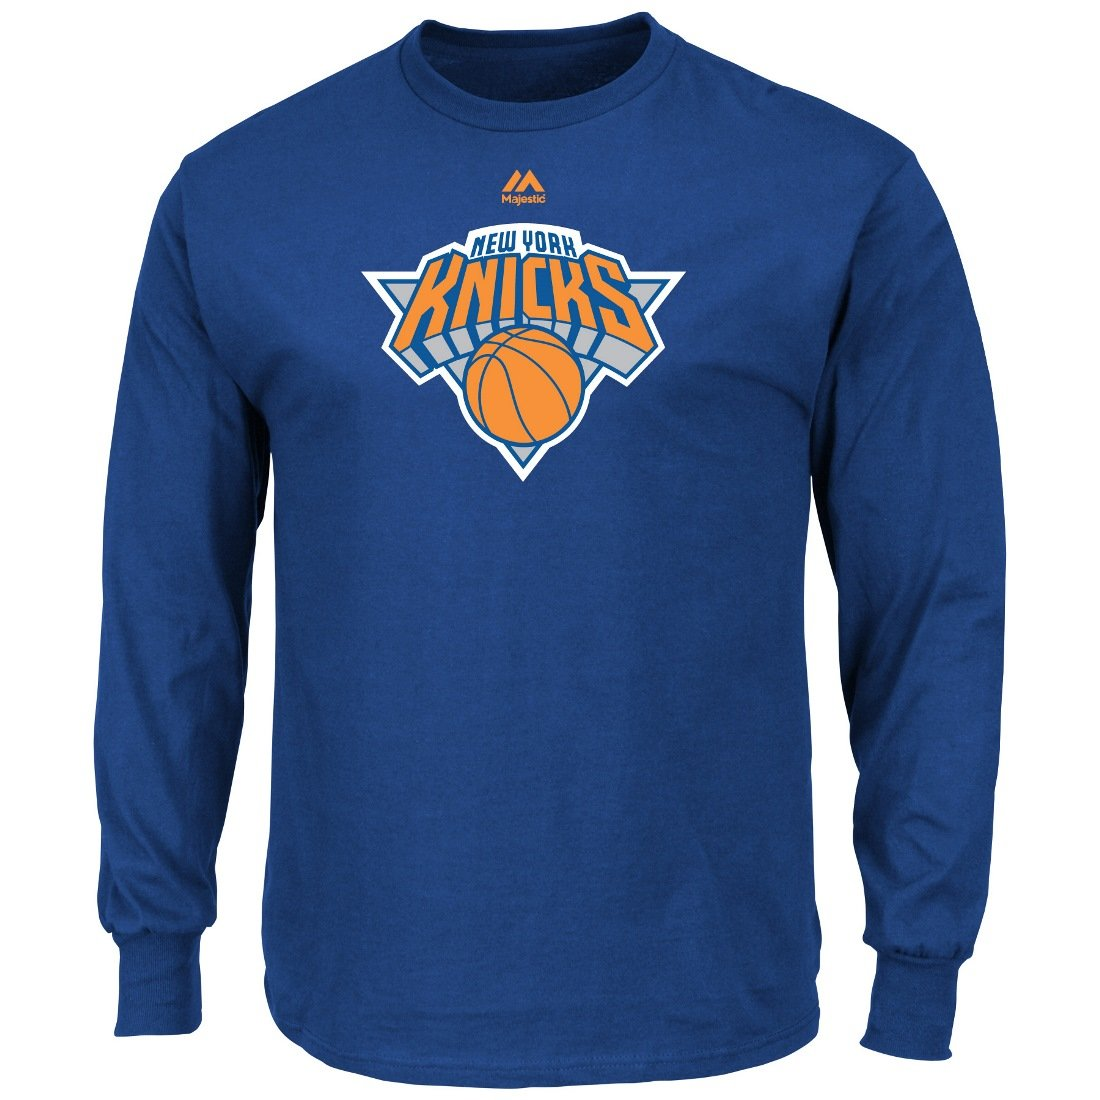 New York Knicks Majestic NBA Supreme Logo Men's Long Sleeve T-Shirt - Blue